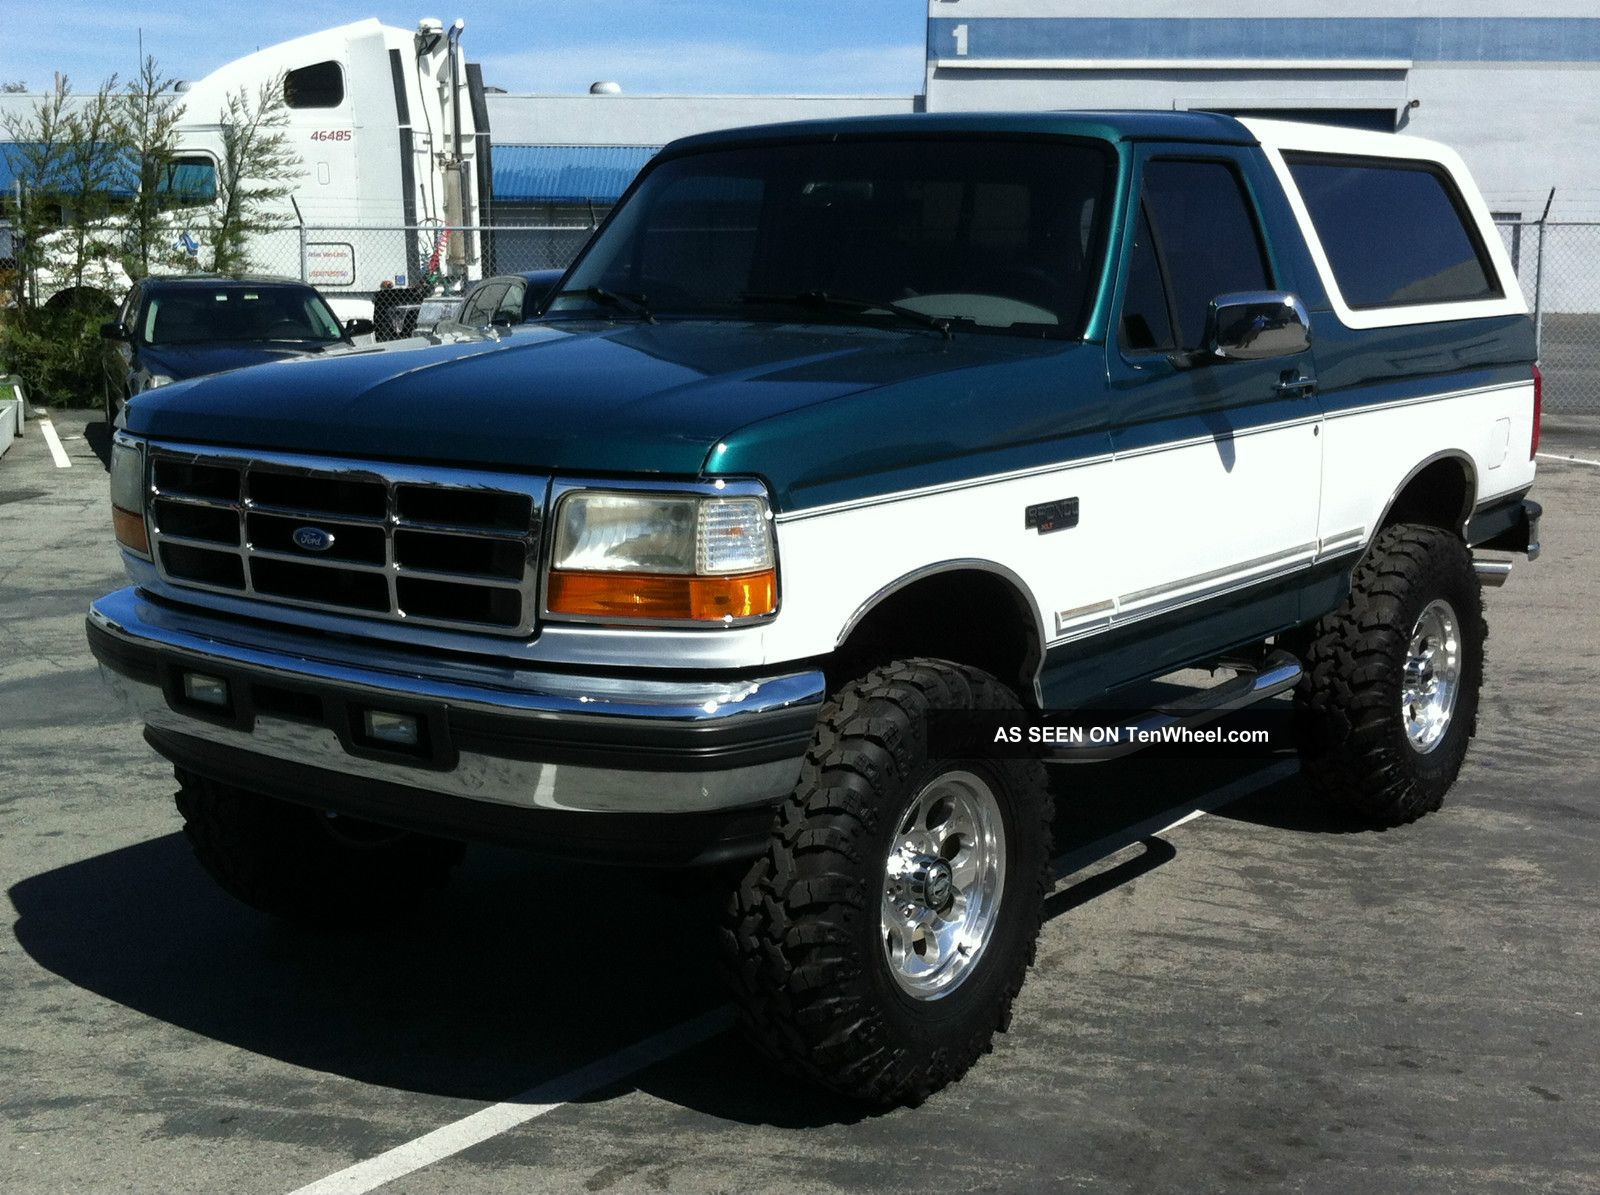 1996 Ford Bronco Image 5